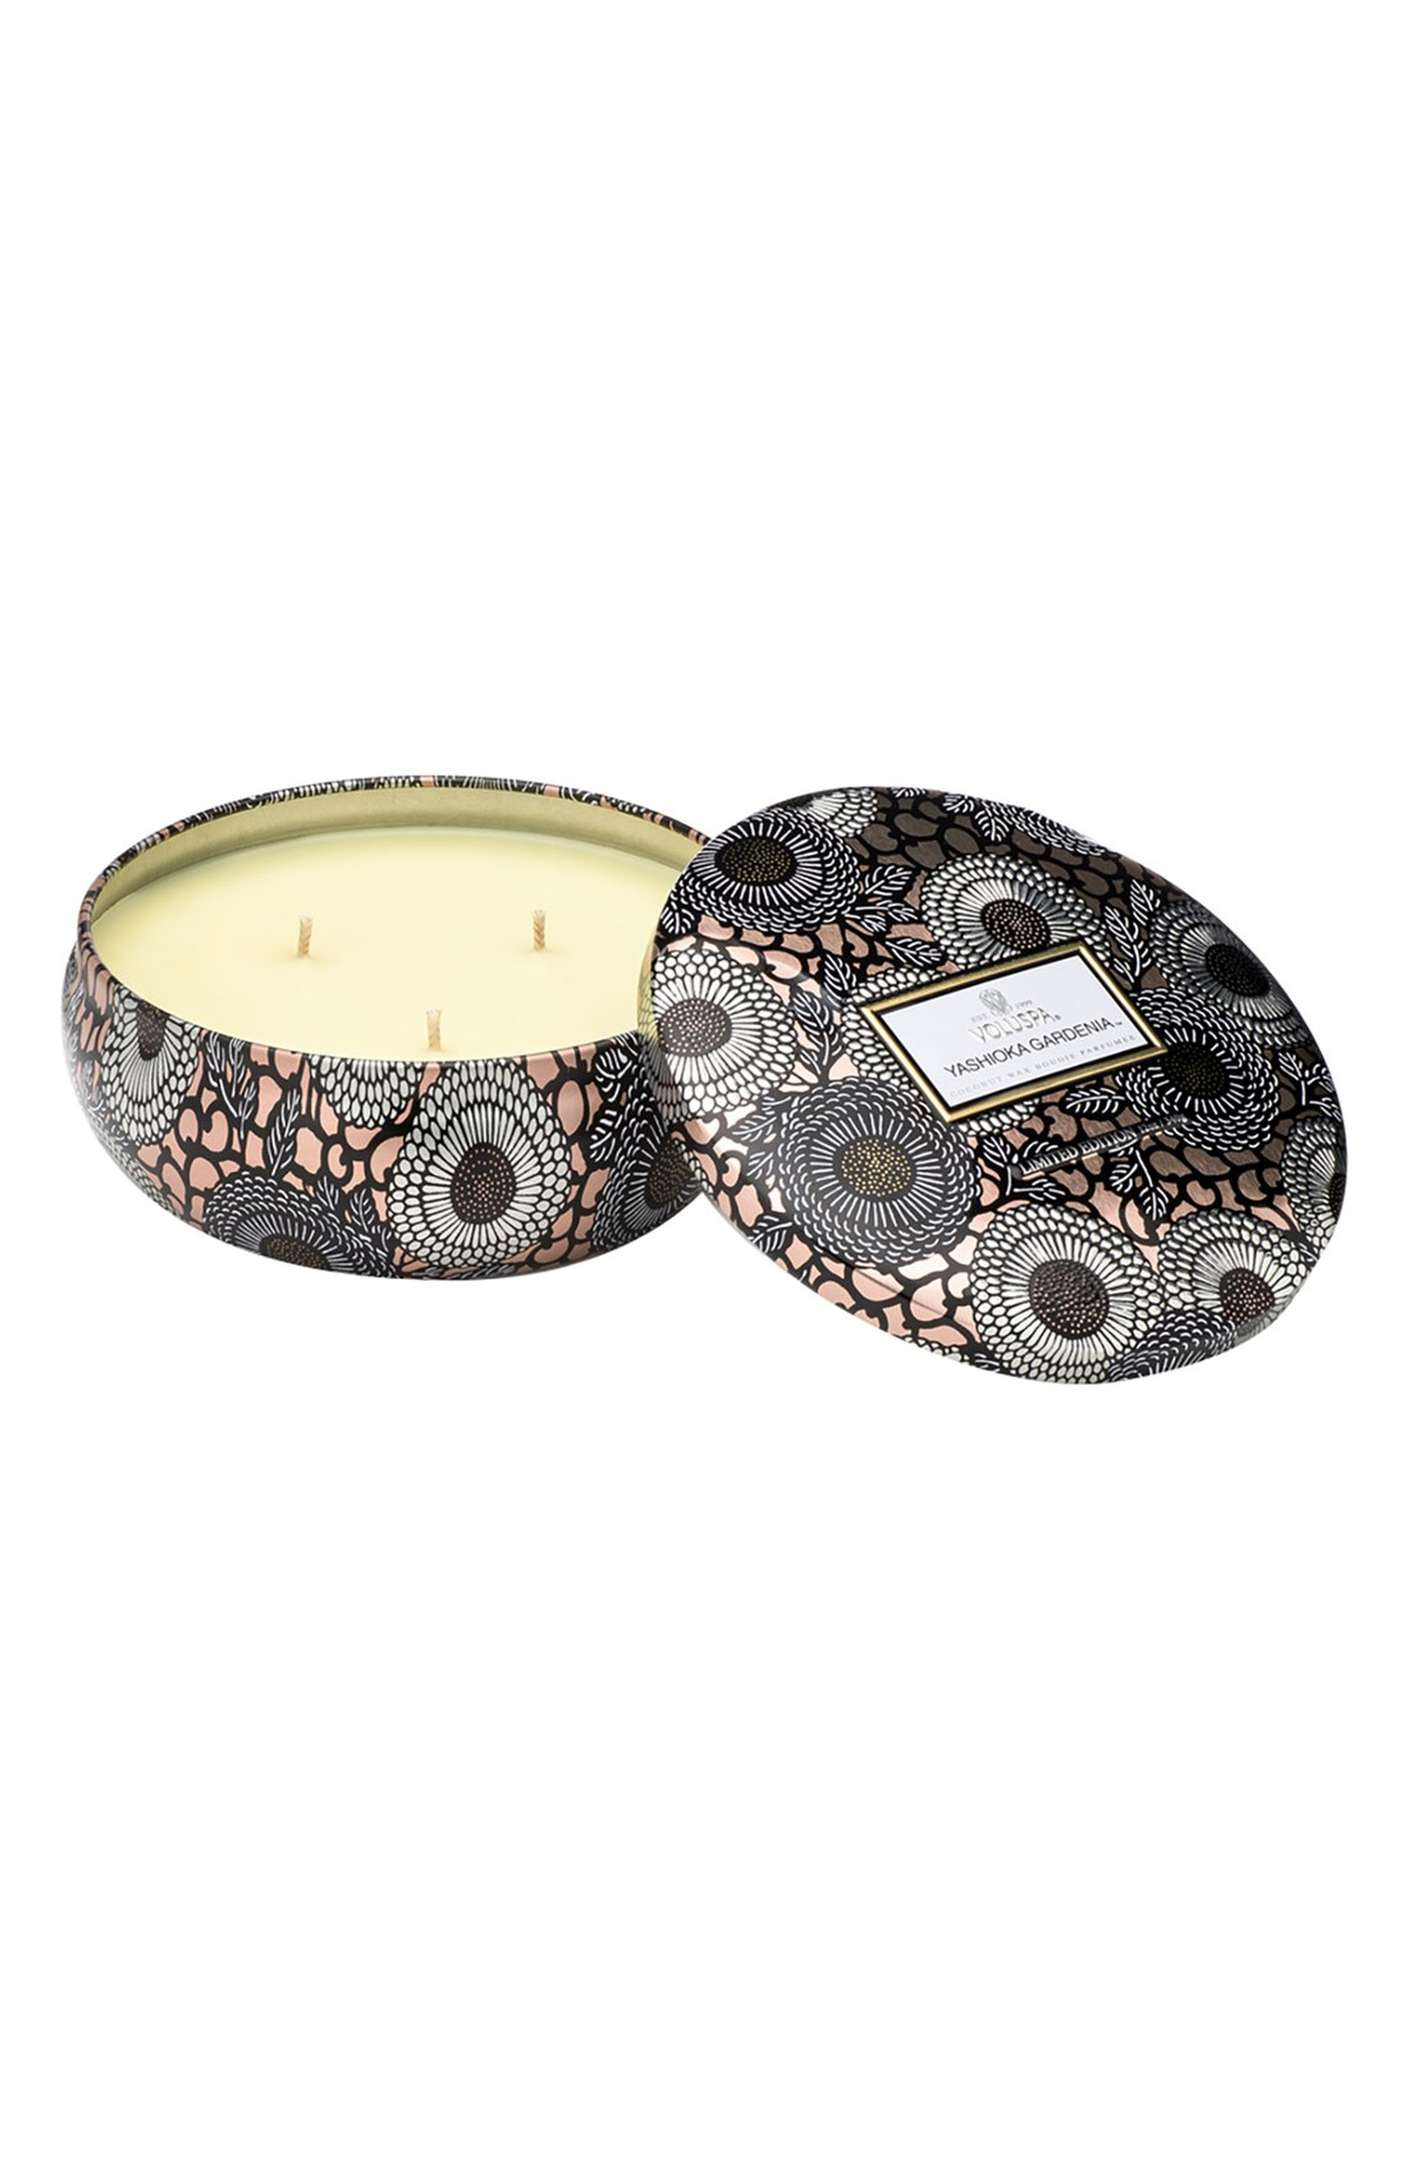 Soothing candle by Nordstrom